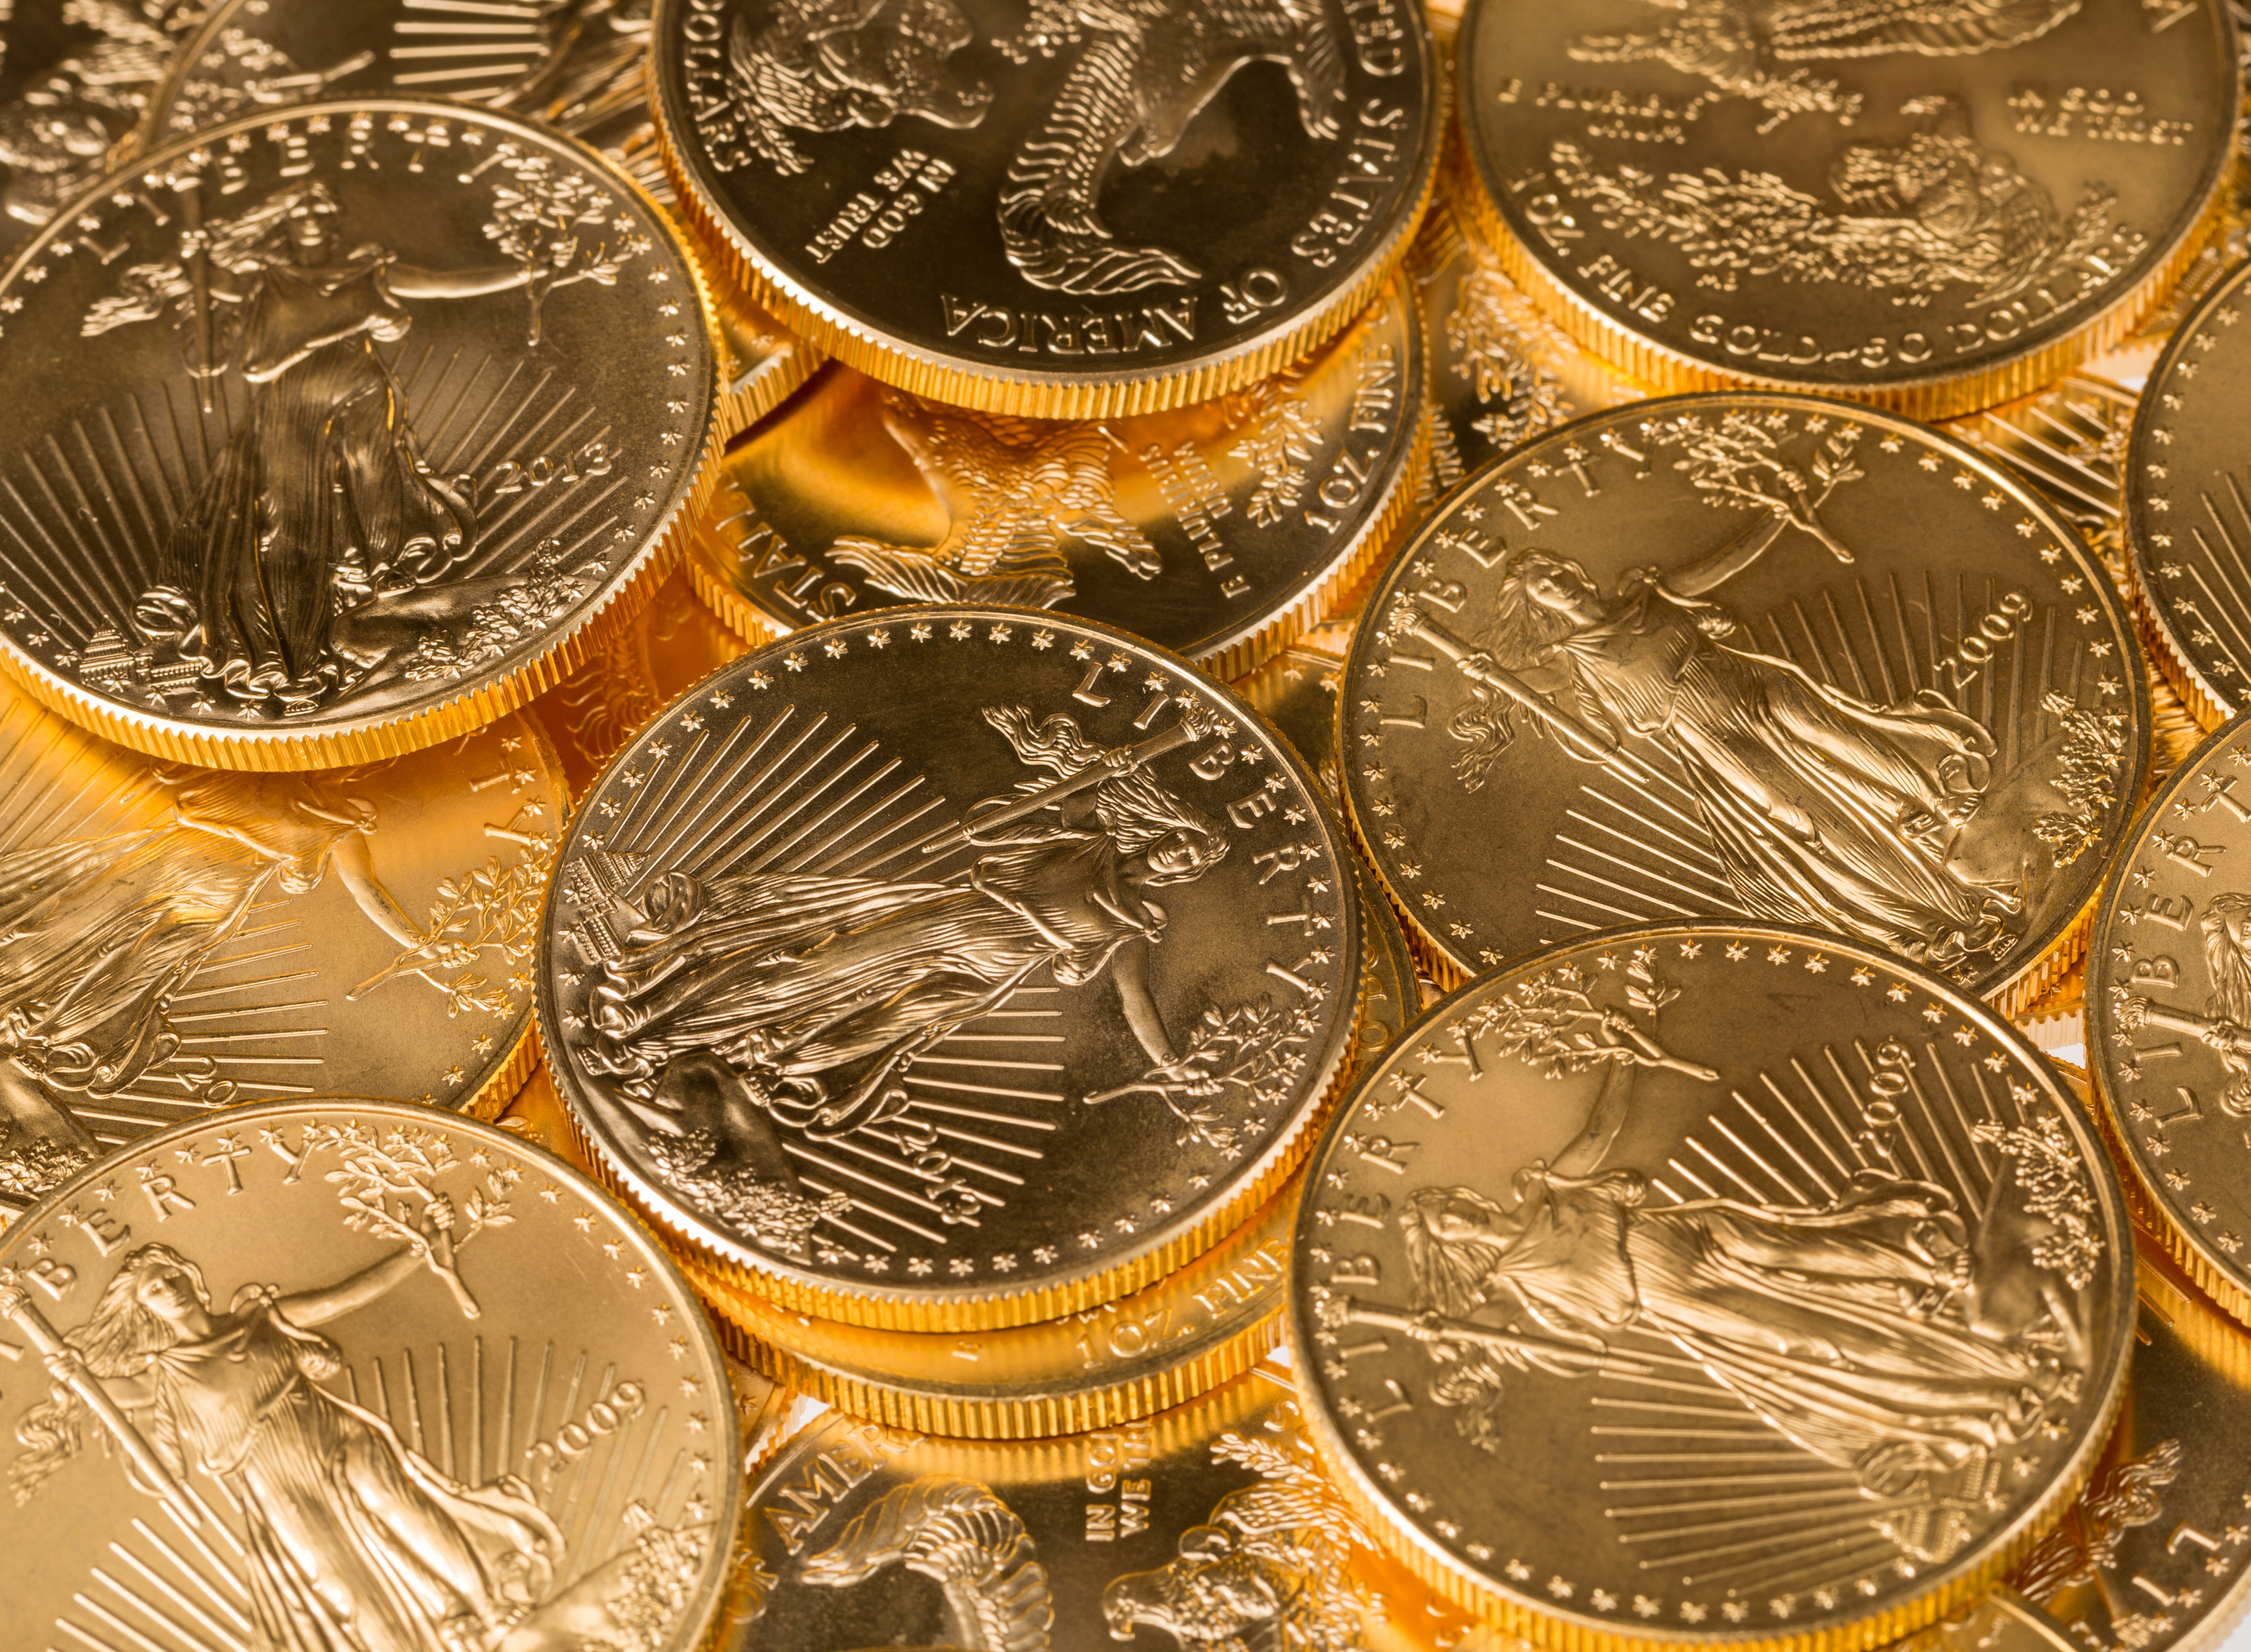 How to buy gold now - 46 Trillion Compelling Reasons To Buy Gold Now